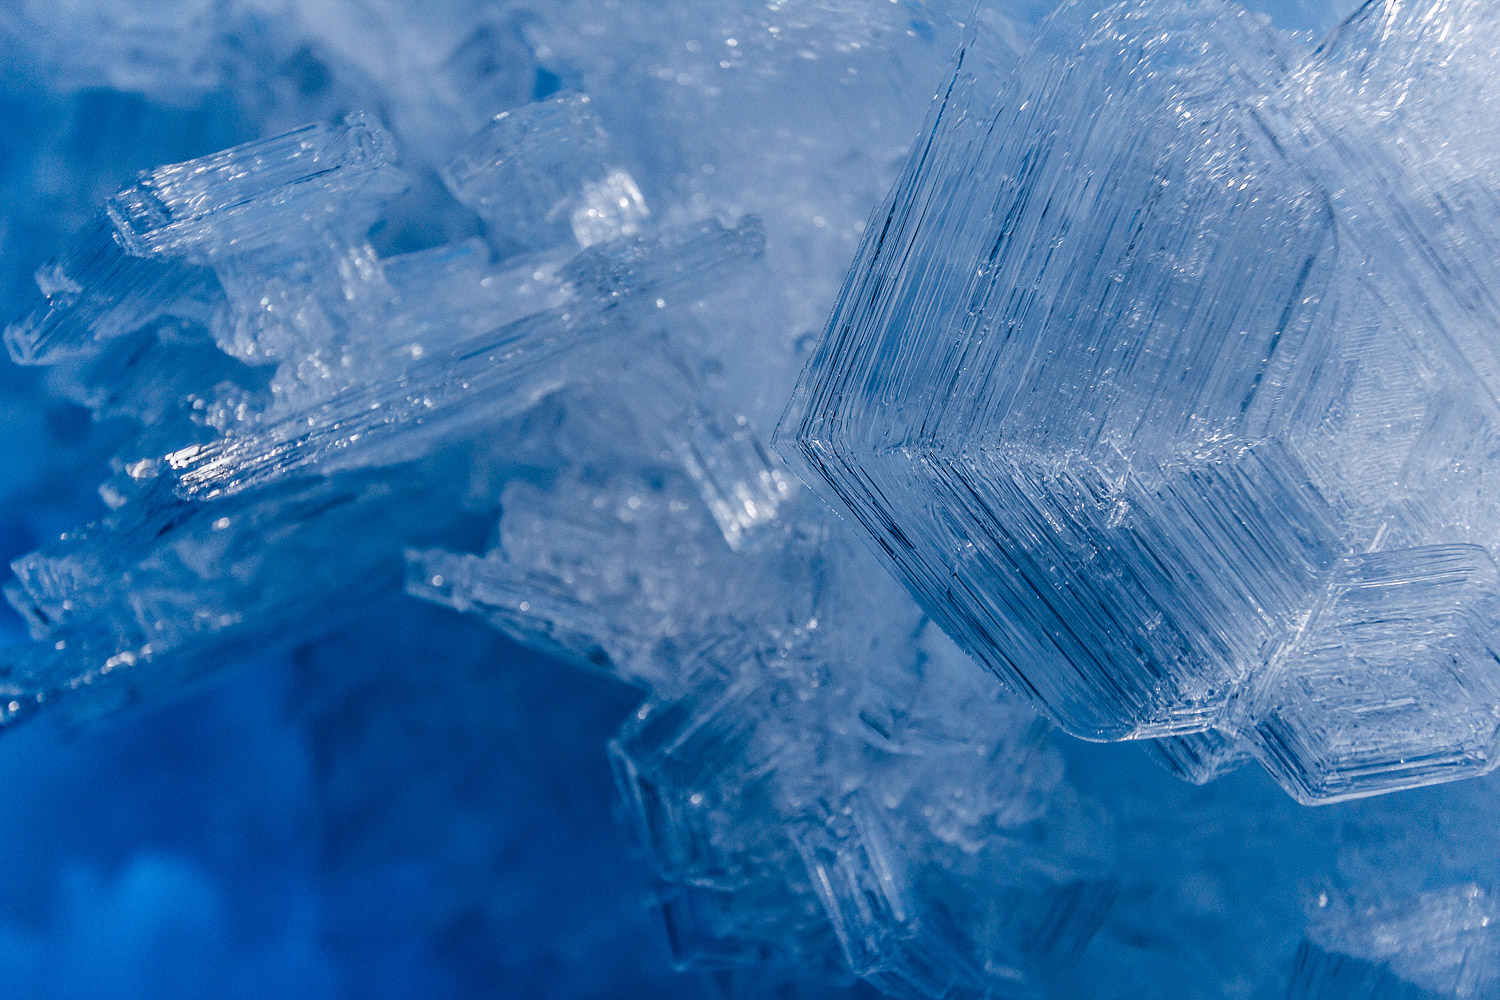 05. Ice Formations